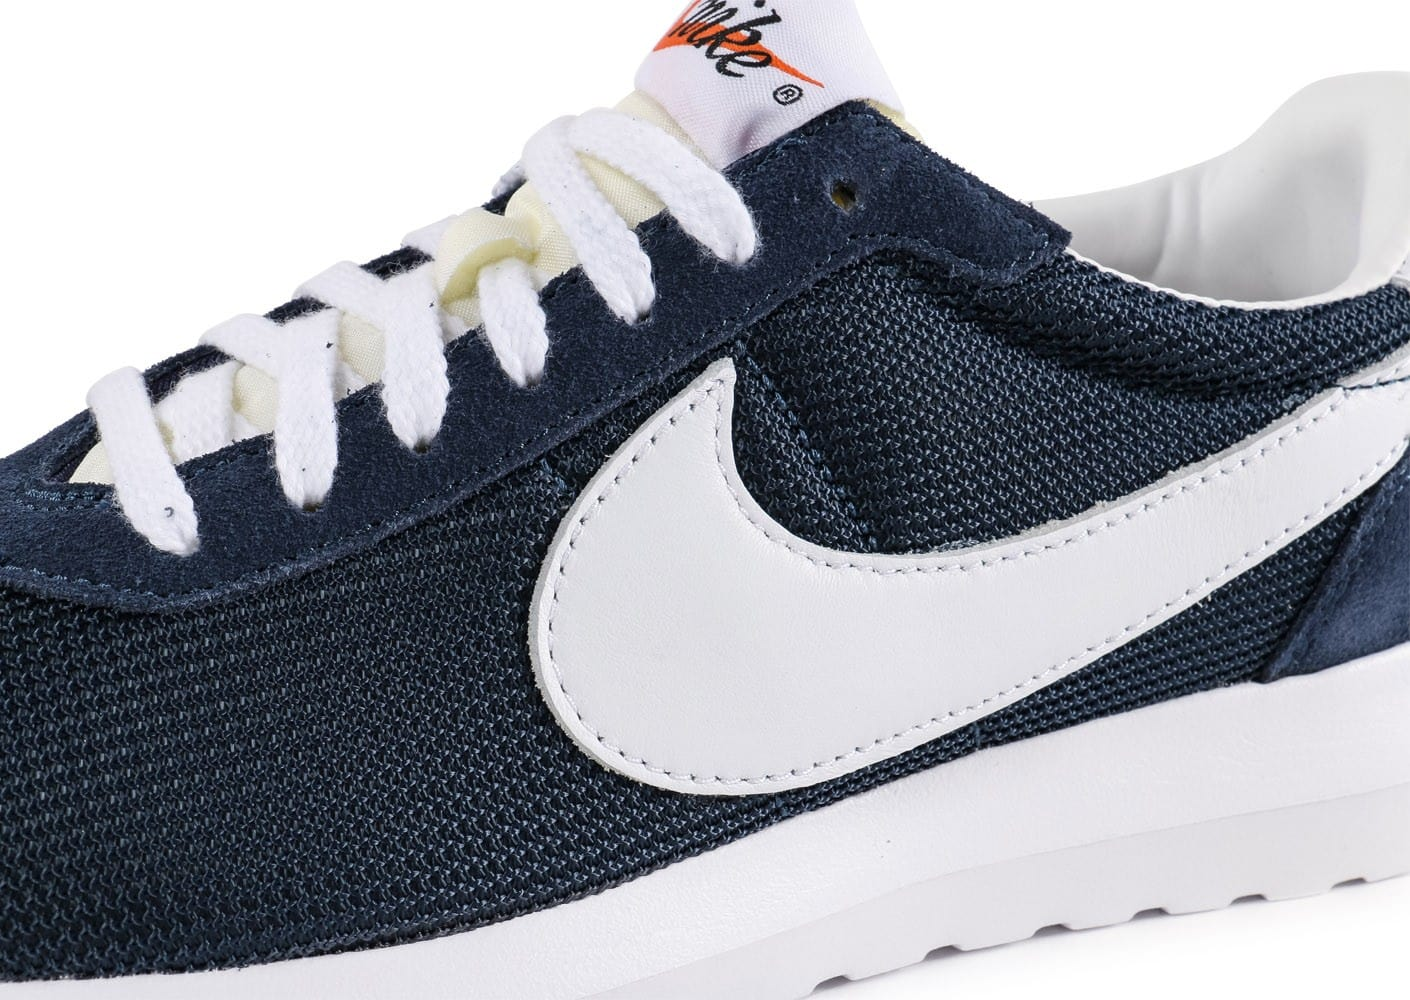 nike personnalisé dunks chaussures - Nike Roshe LD-1000 bleu marine - Chaussures Homme - Chausport